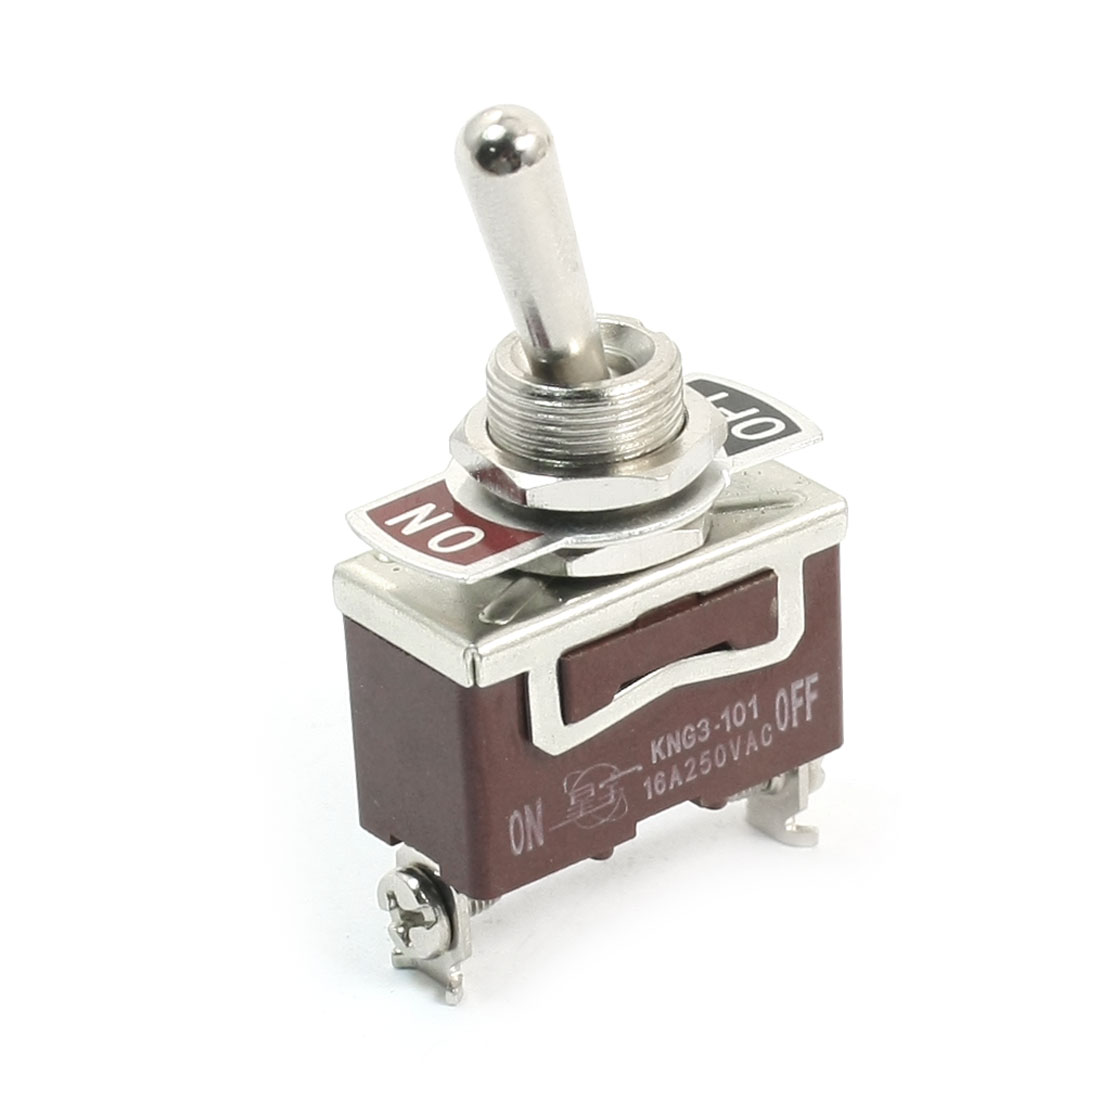 KNG3-101 SPST 2 Way Locking Rocker Type Toggle Switch AC 250V 16A